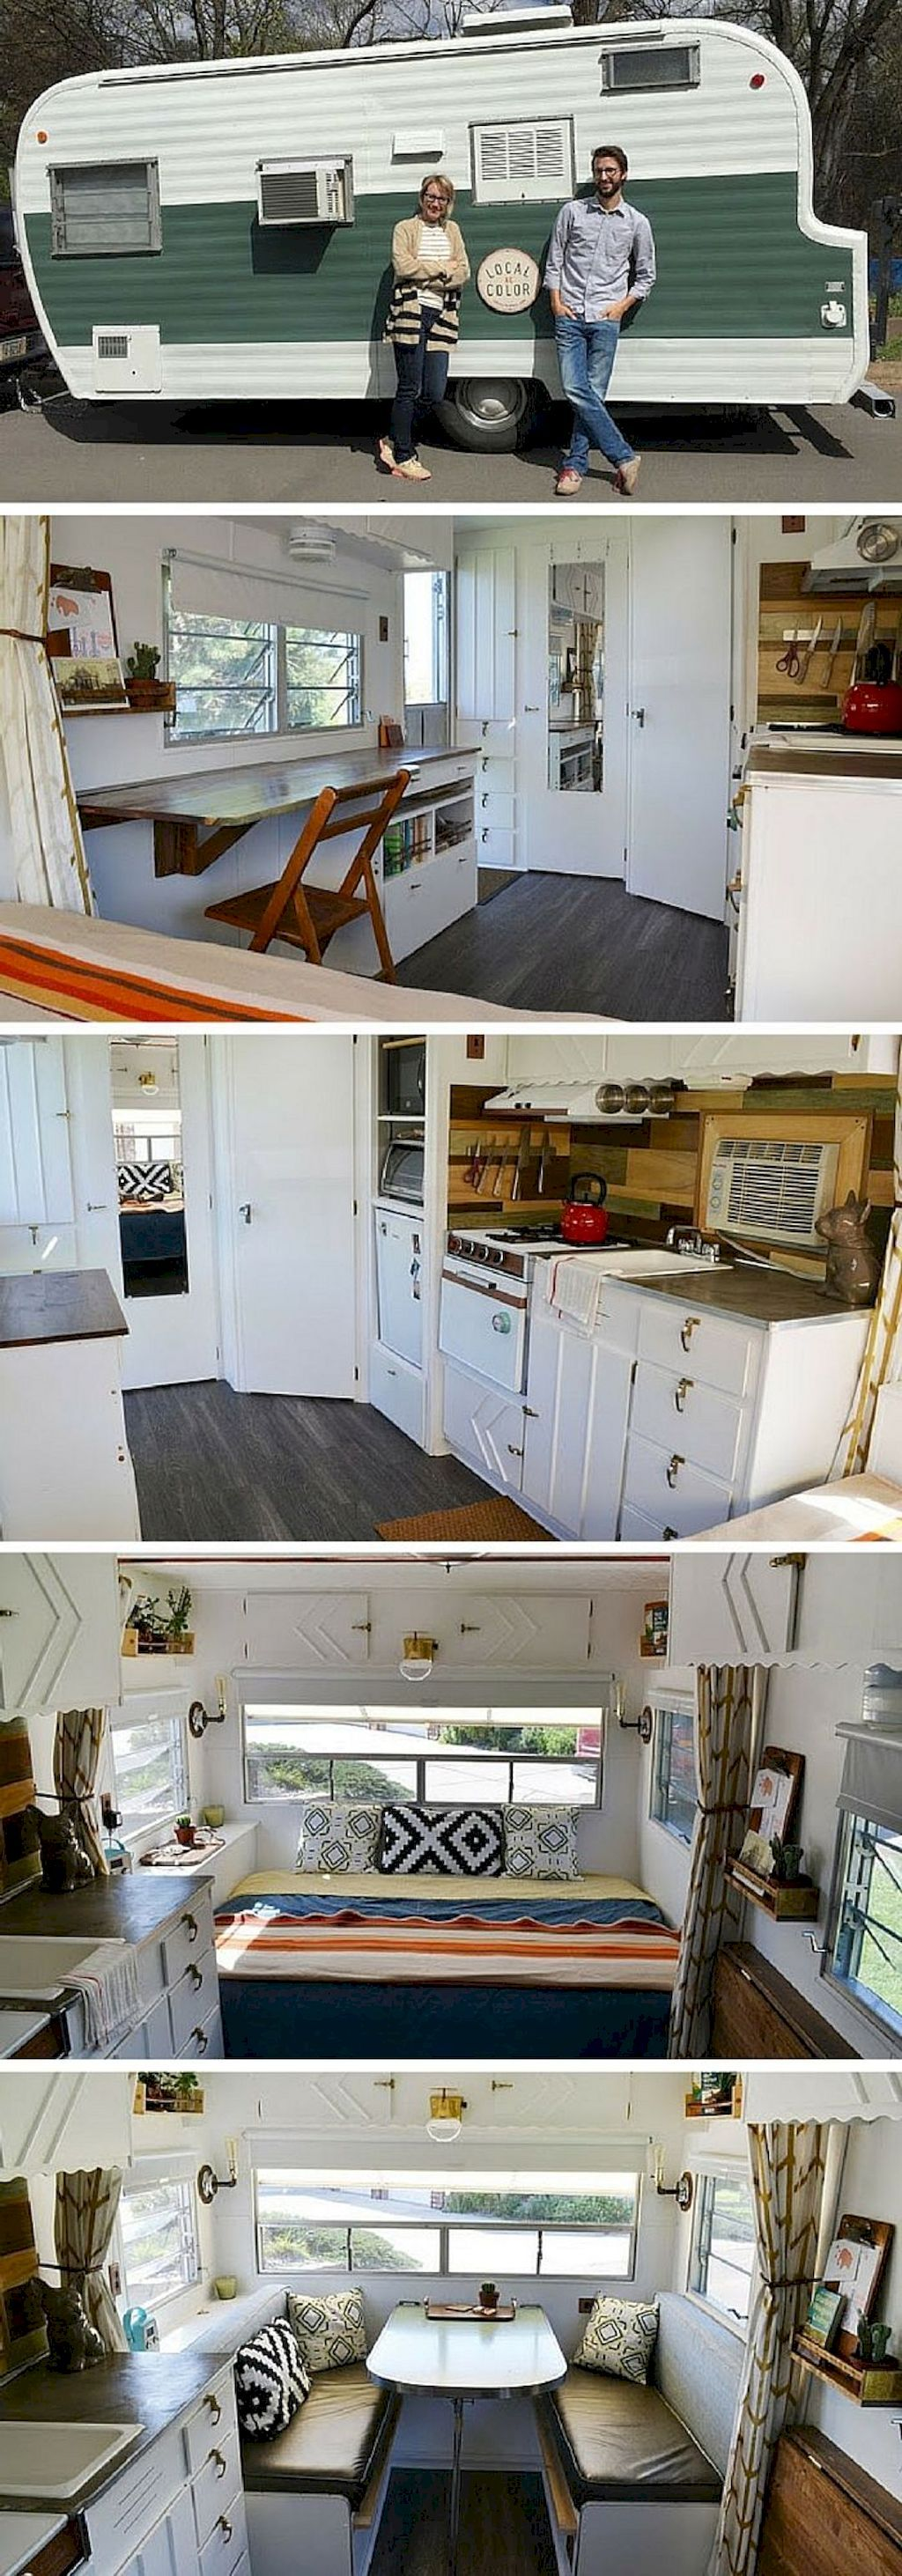 Cool 54 Camper Remodel Ideas for Renovating RV Travel